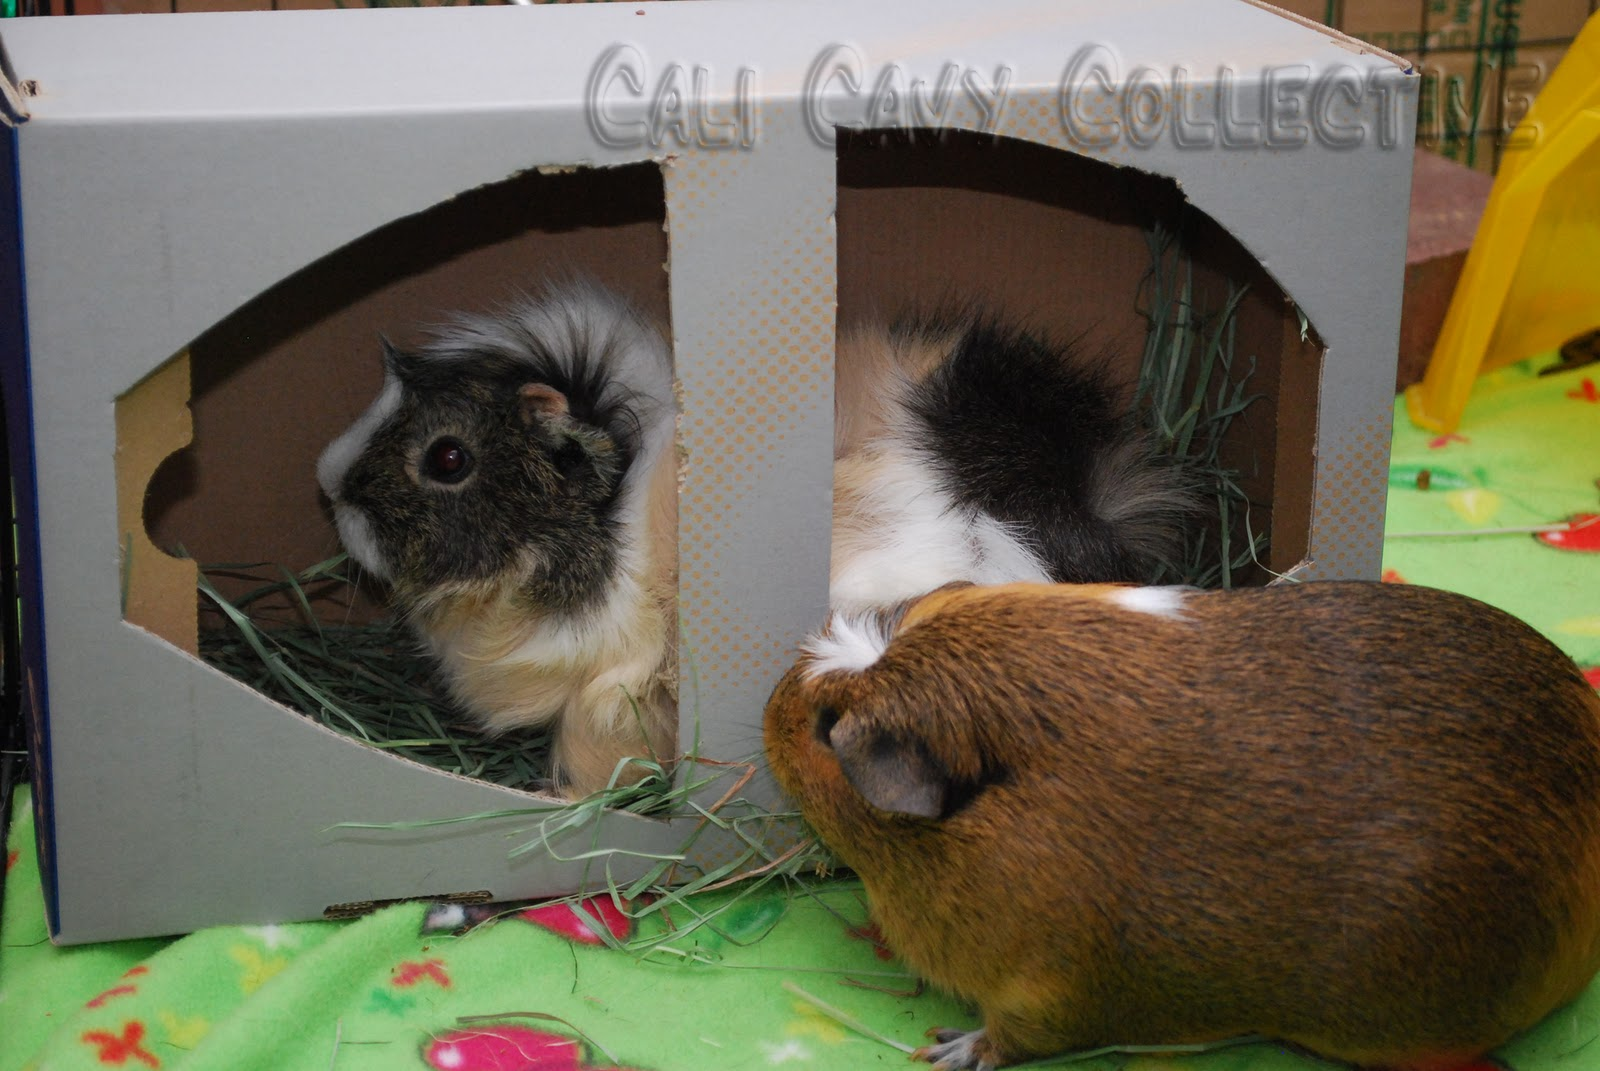 Cali Cavy Collective A Blog About All Things Guinea Pig